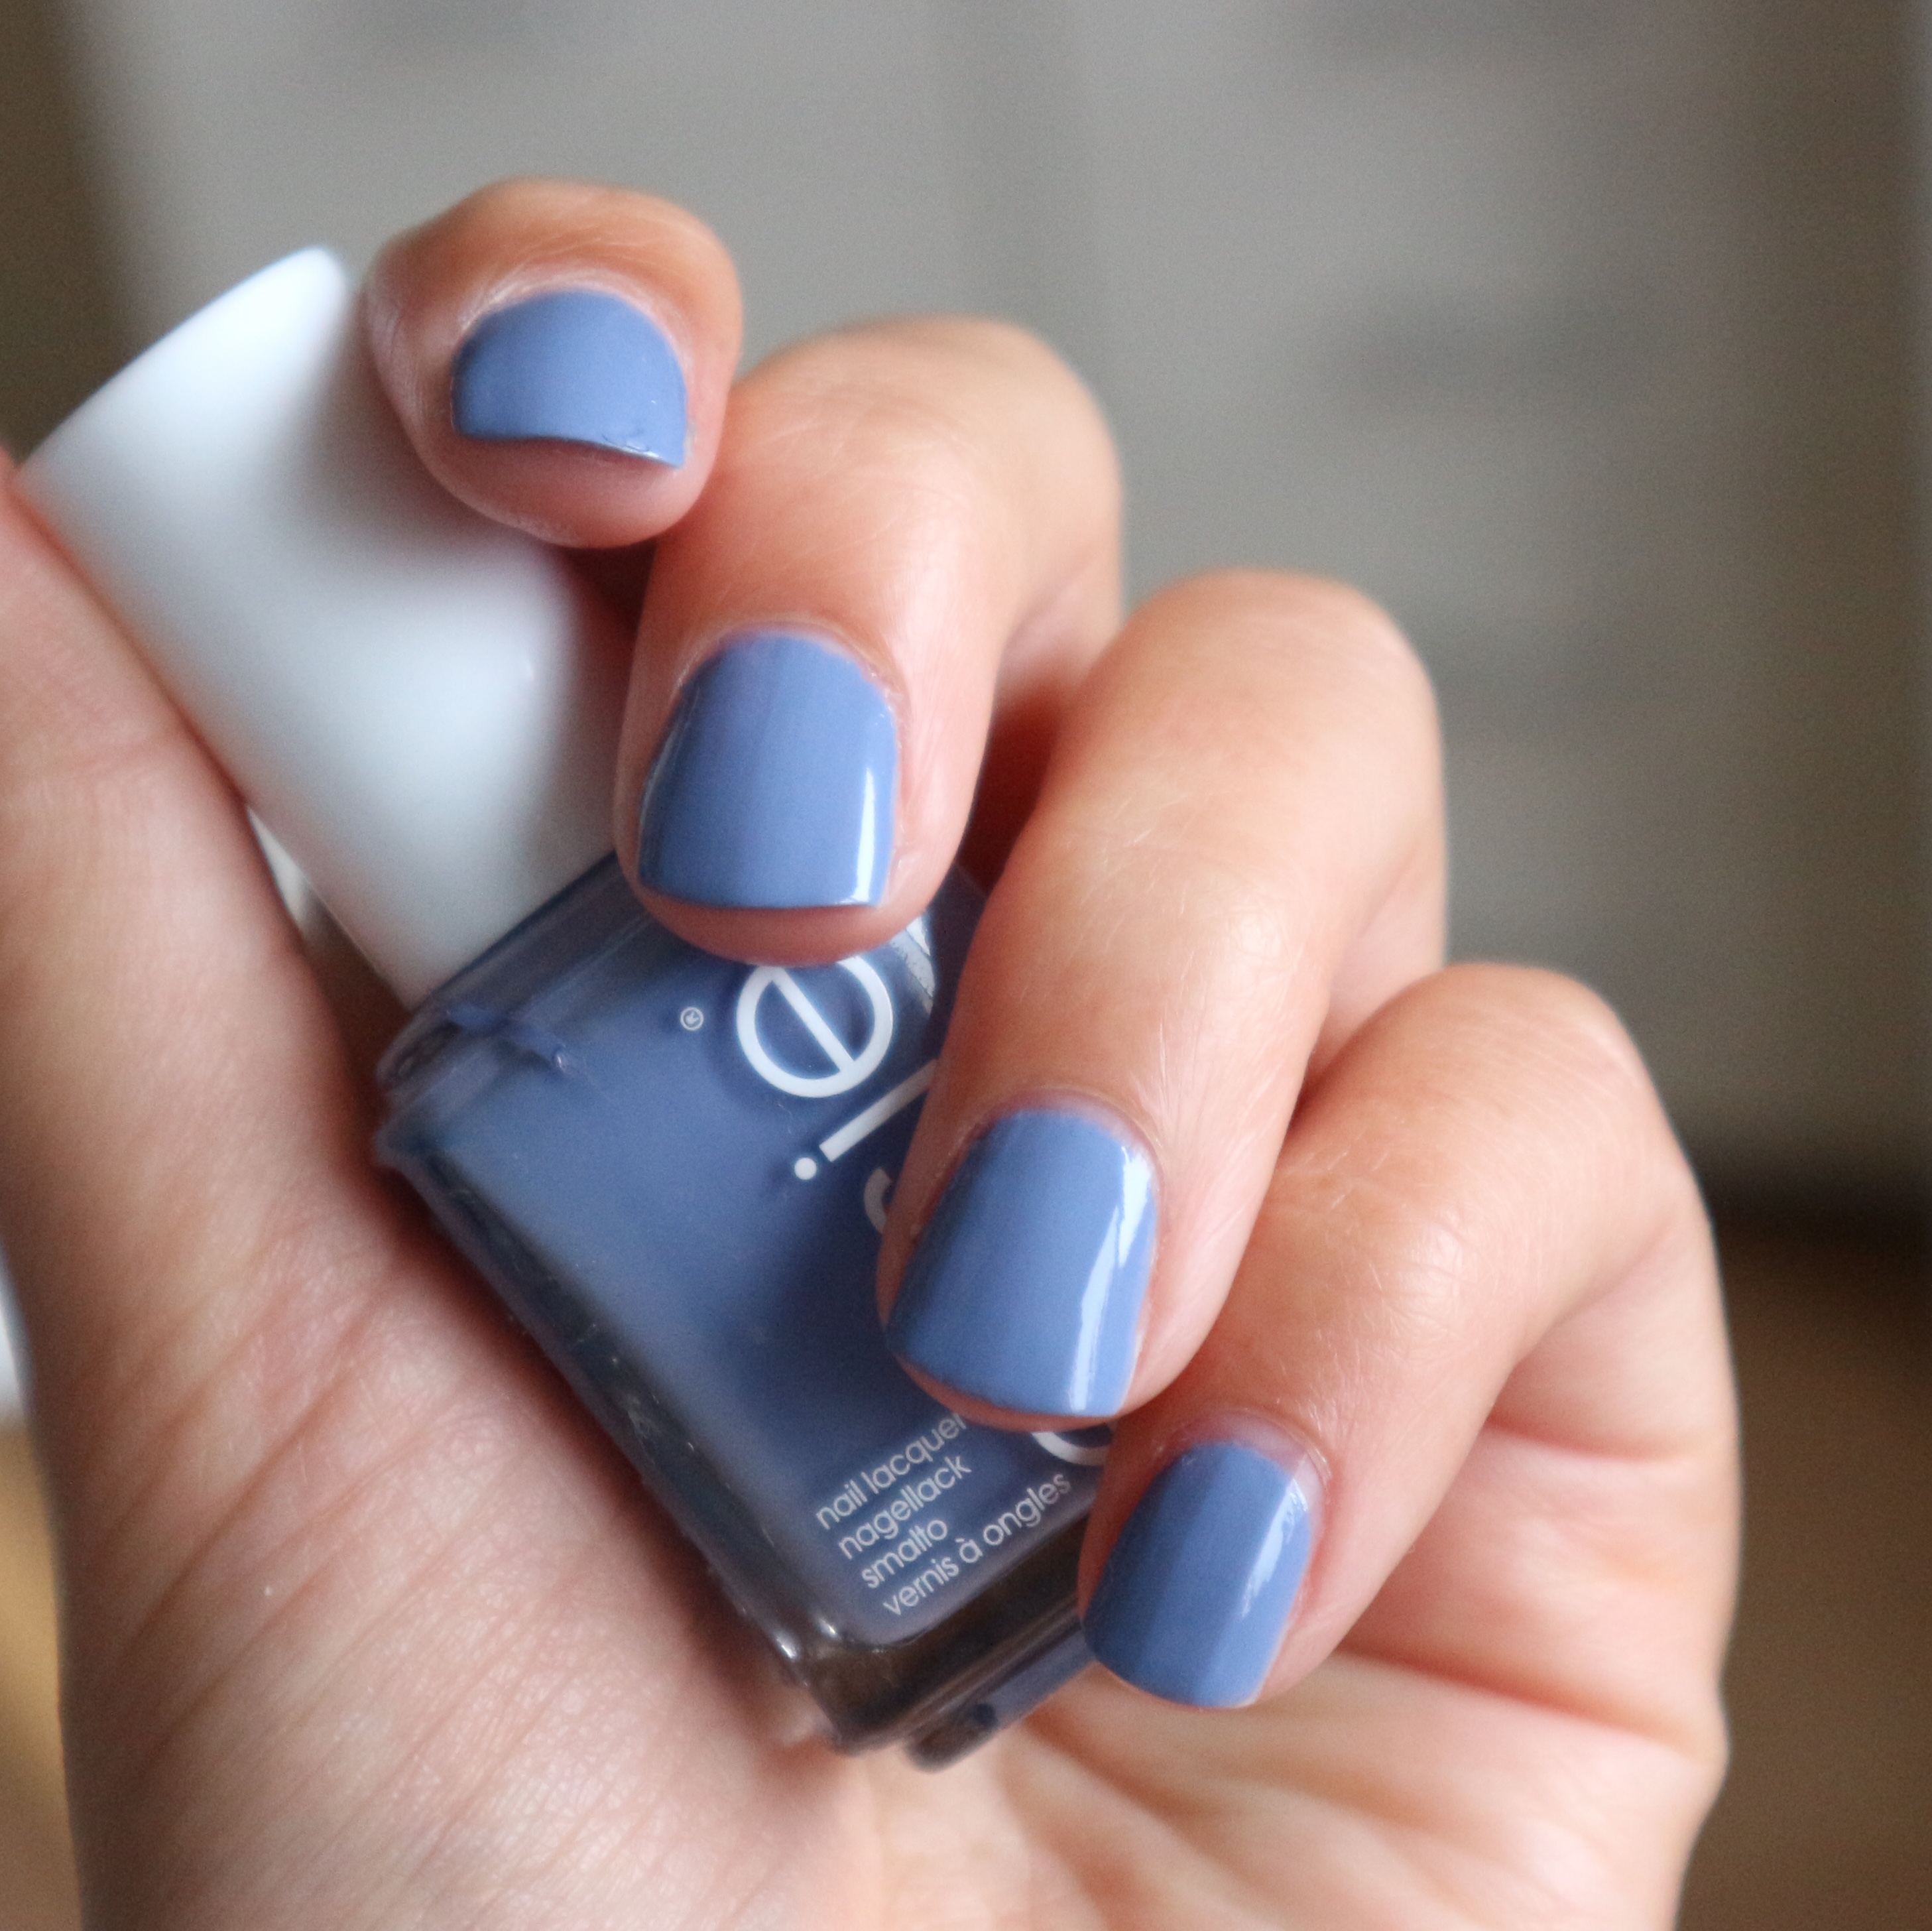 Essie Fall 2017 - 90s inspired collection - Kelly Westra